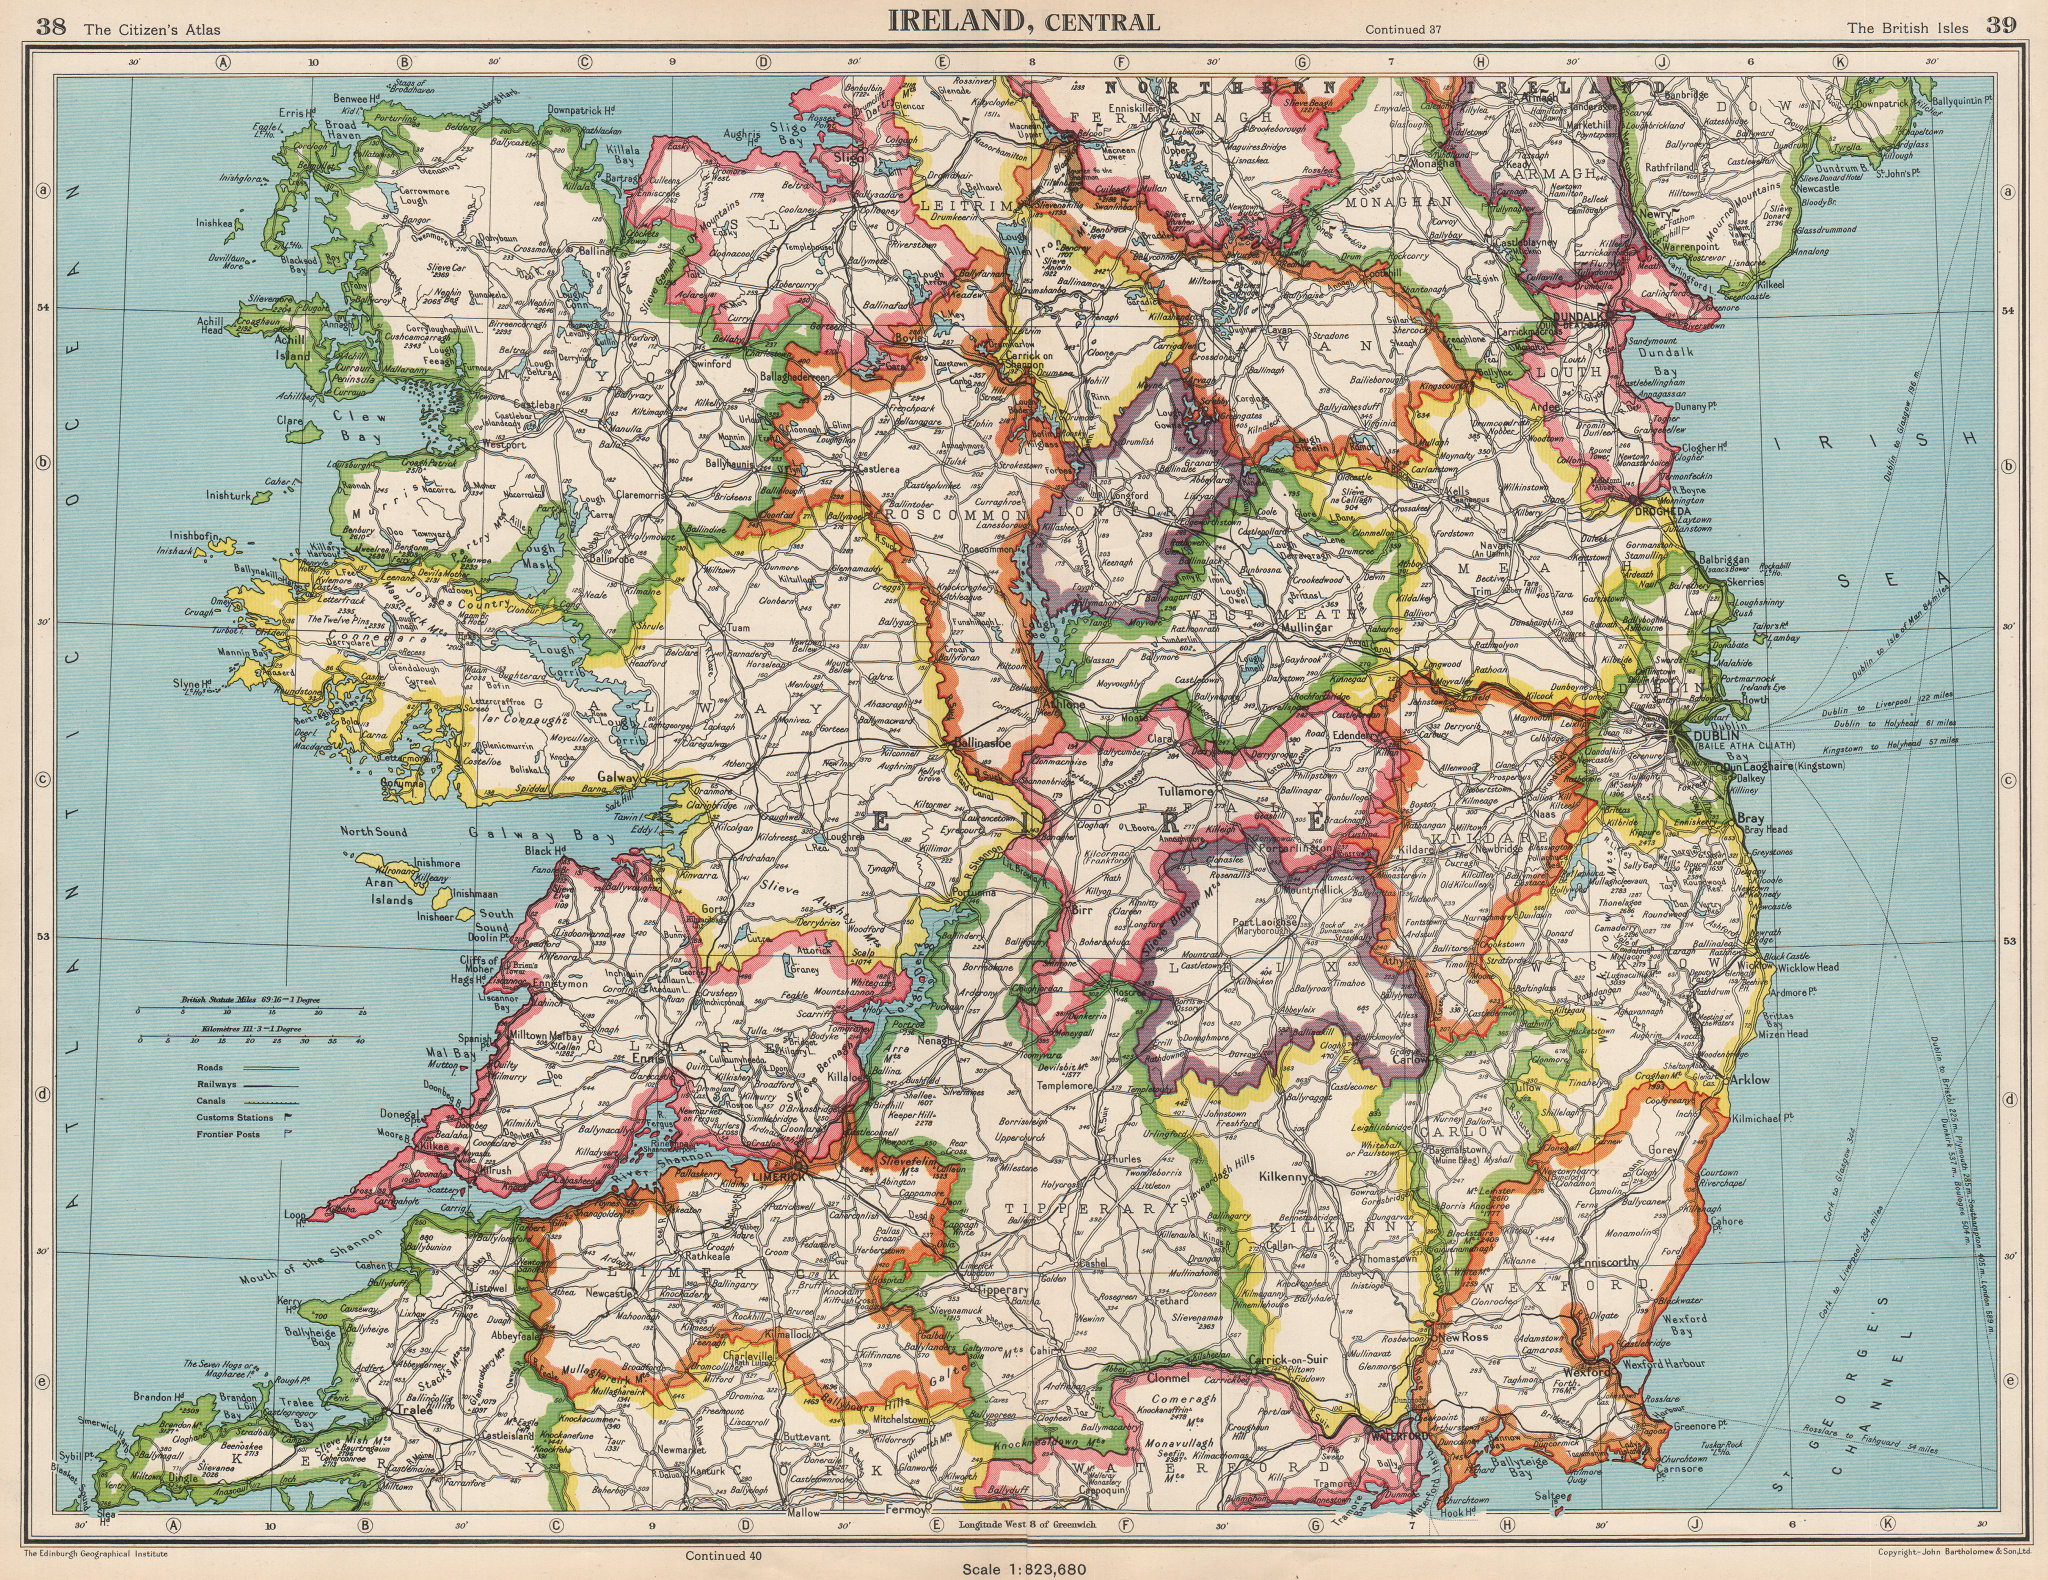 Associate Product IRELAND CENTRAL. Connaught & Leinster. Eire. BARTHOLOMEW 1952 old vintage map